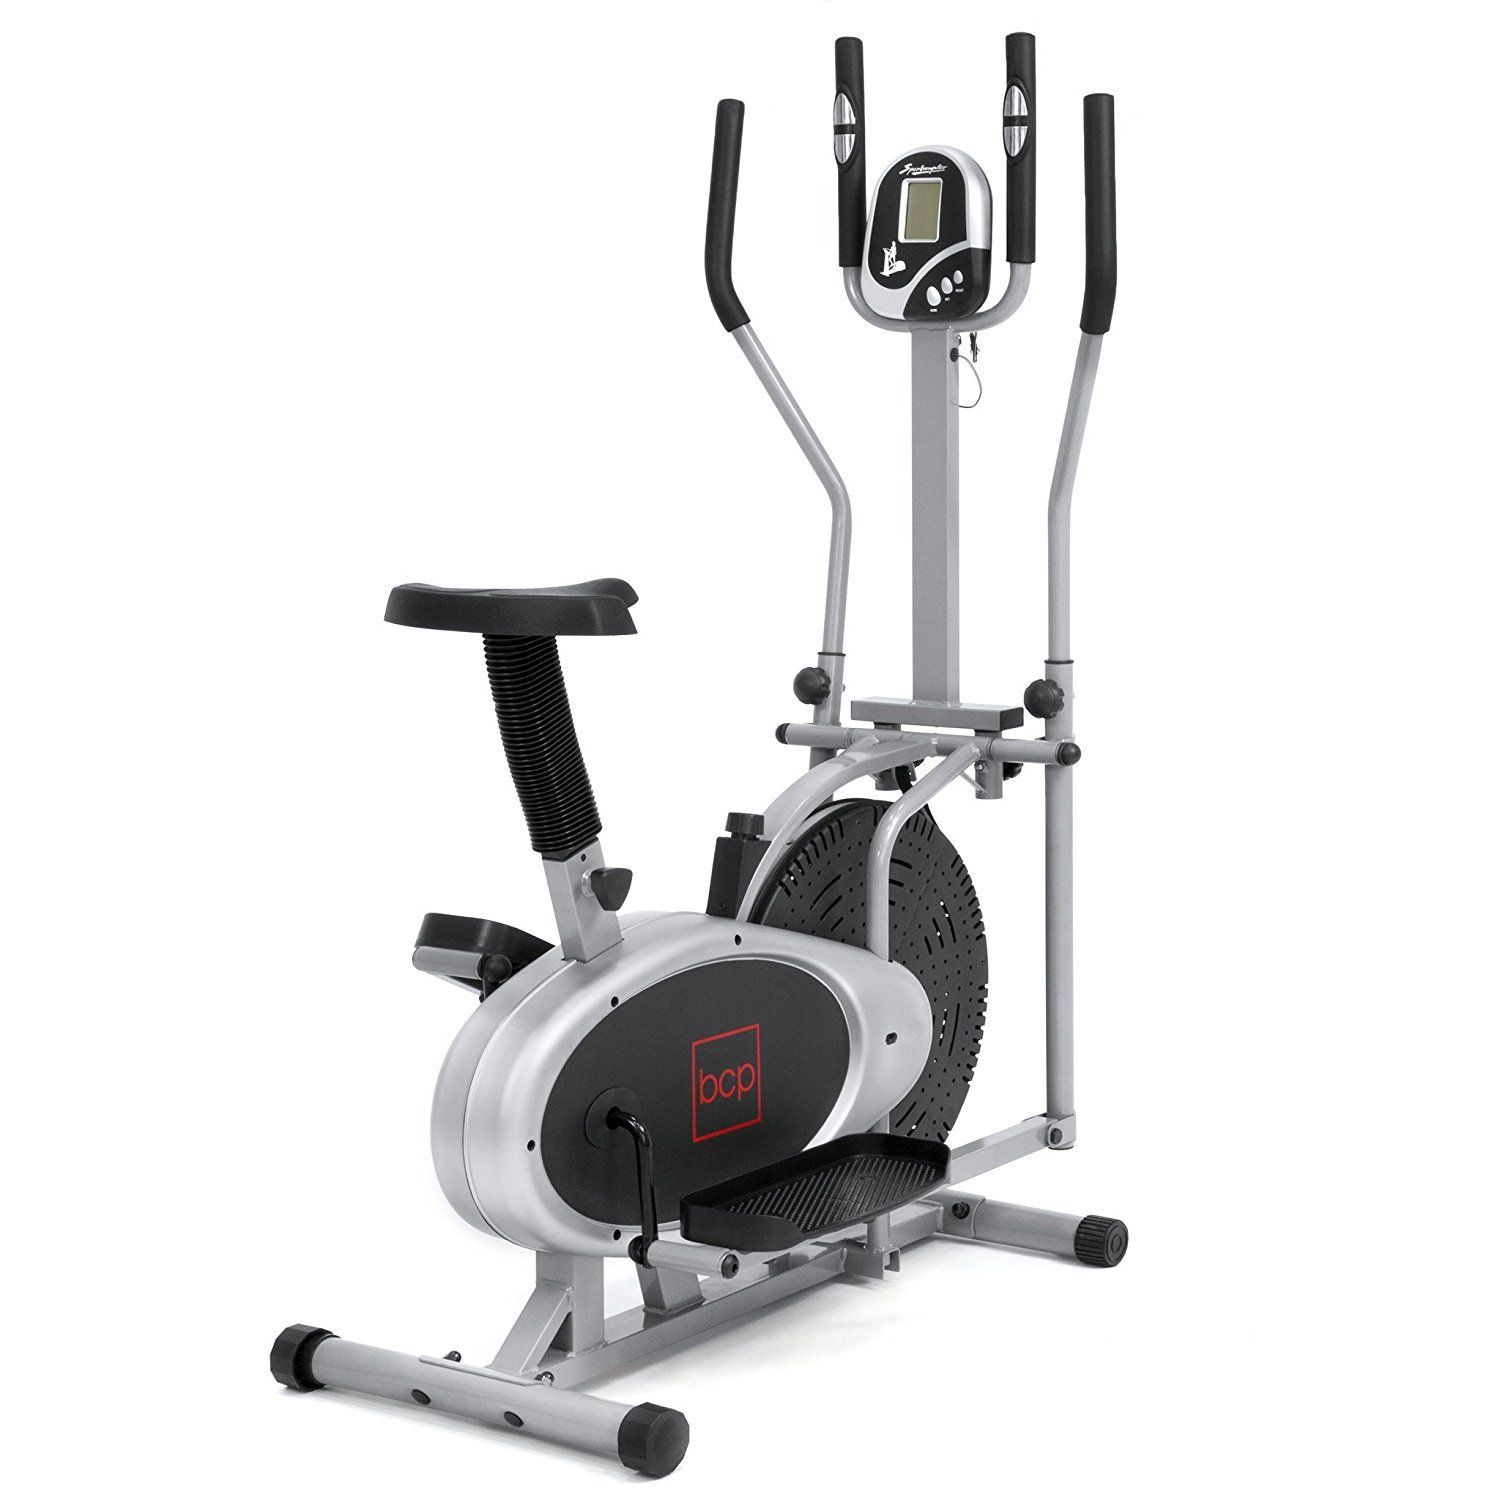 Best Choice Products 2in1 Elliptical Bike Cross Trainer Exercise